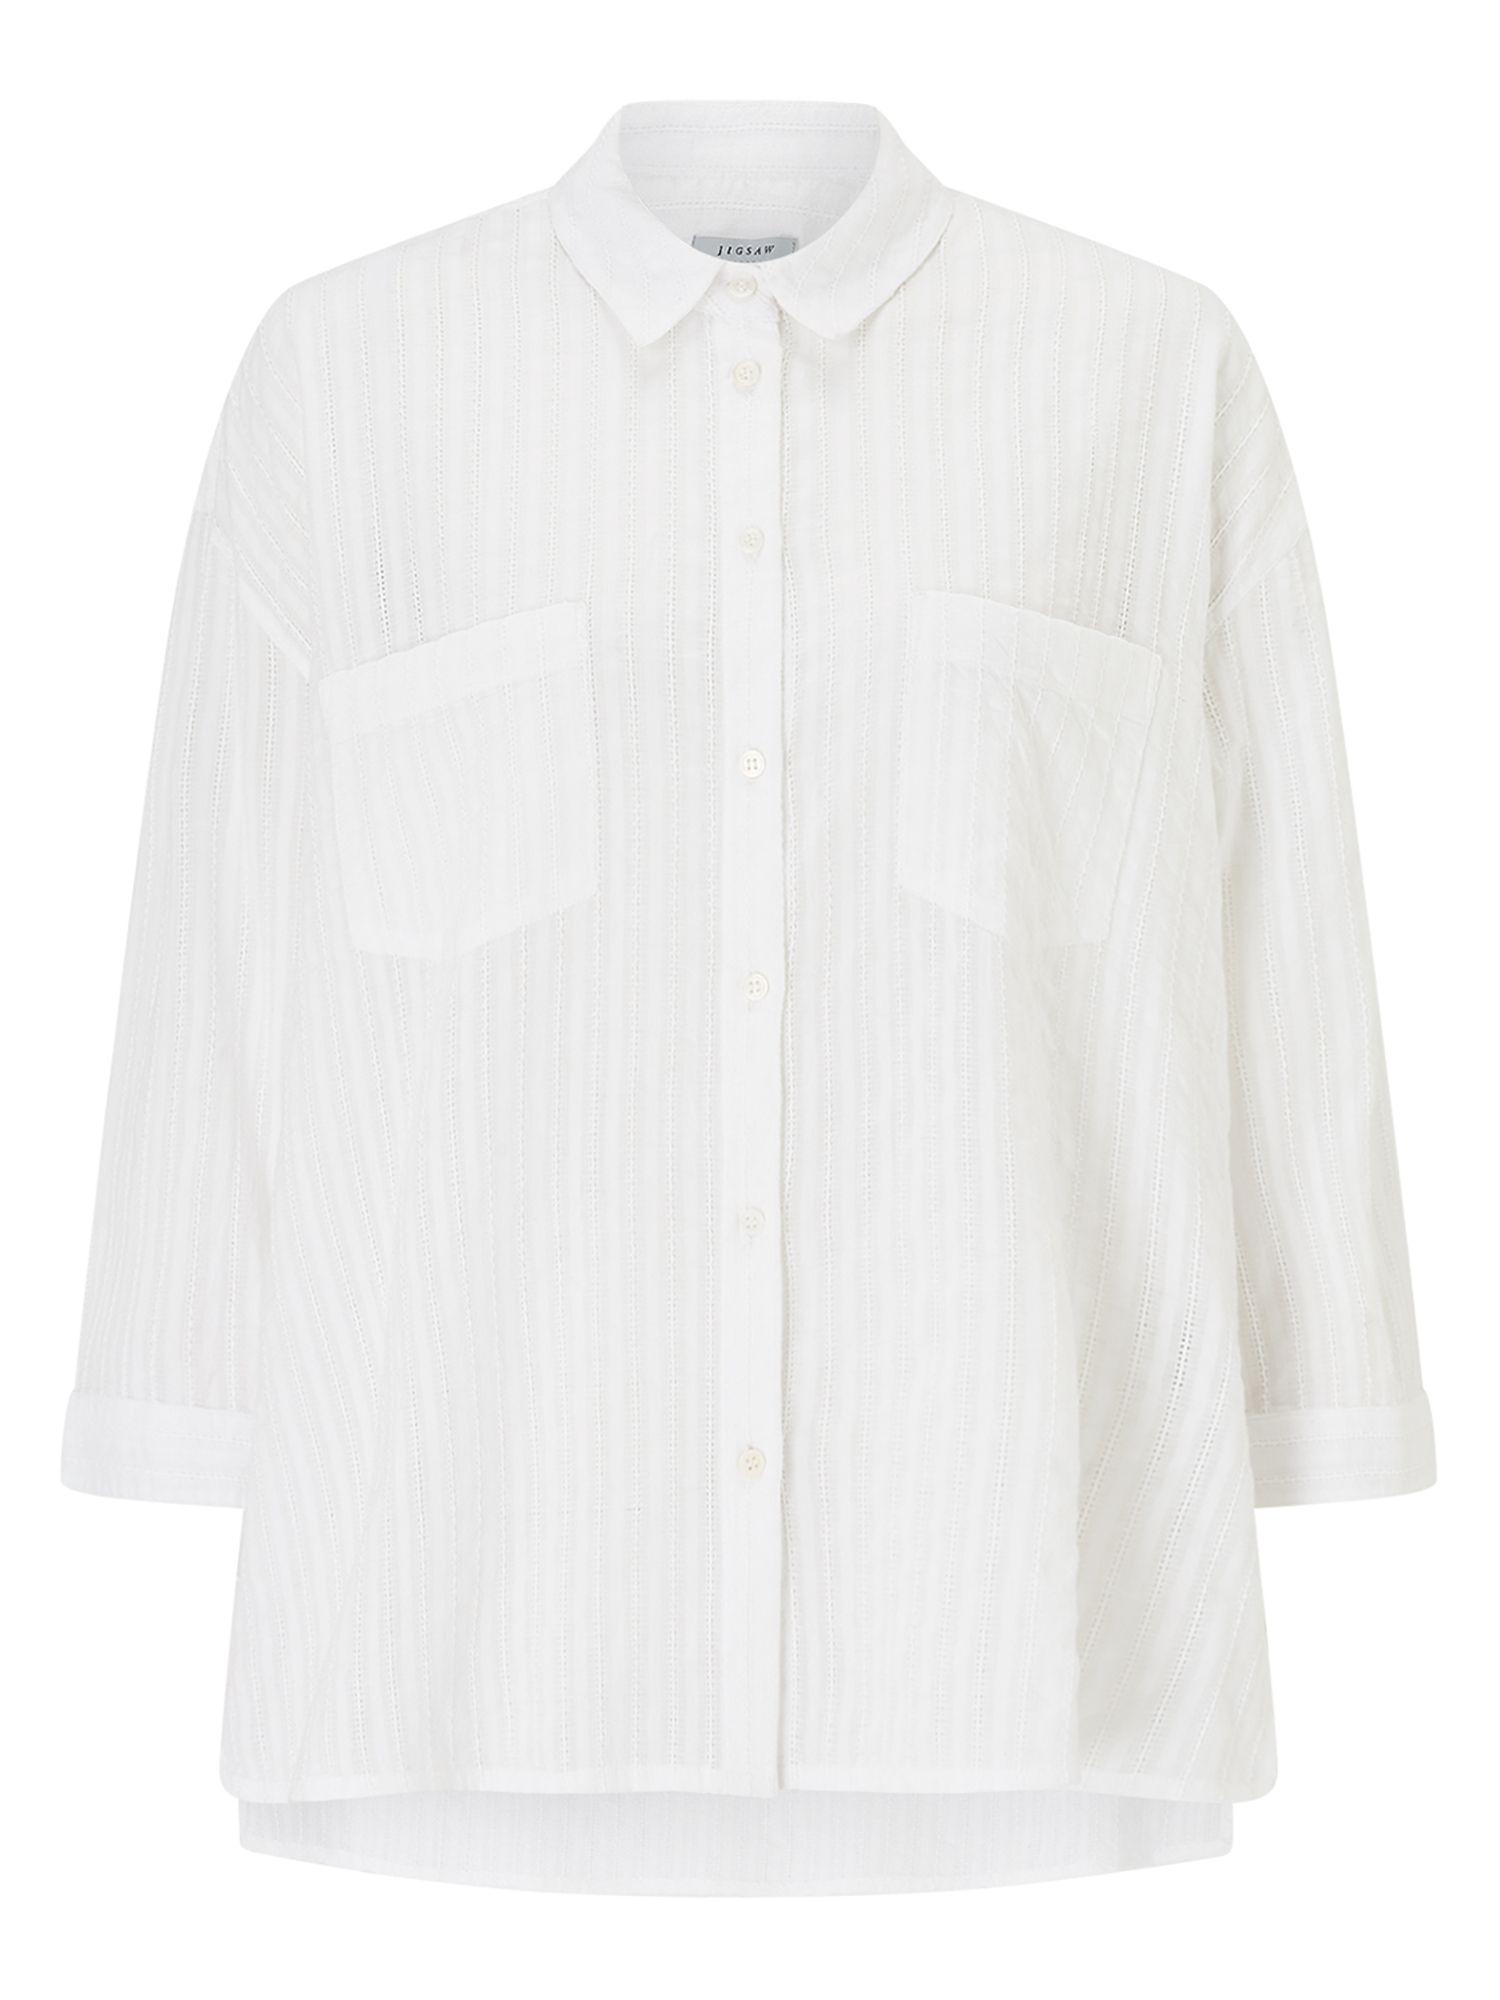 Jigsaw Embroidered Stripe Shirt, White